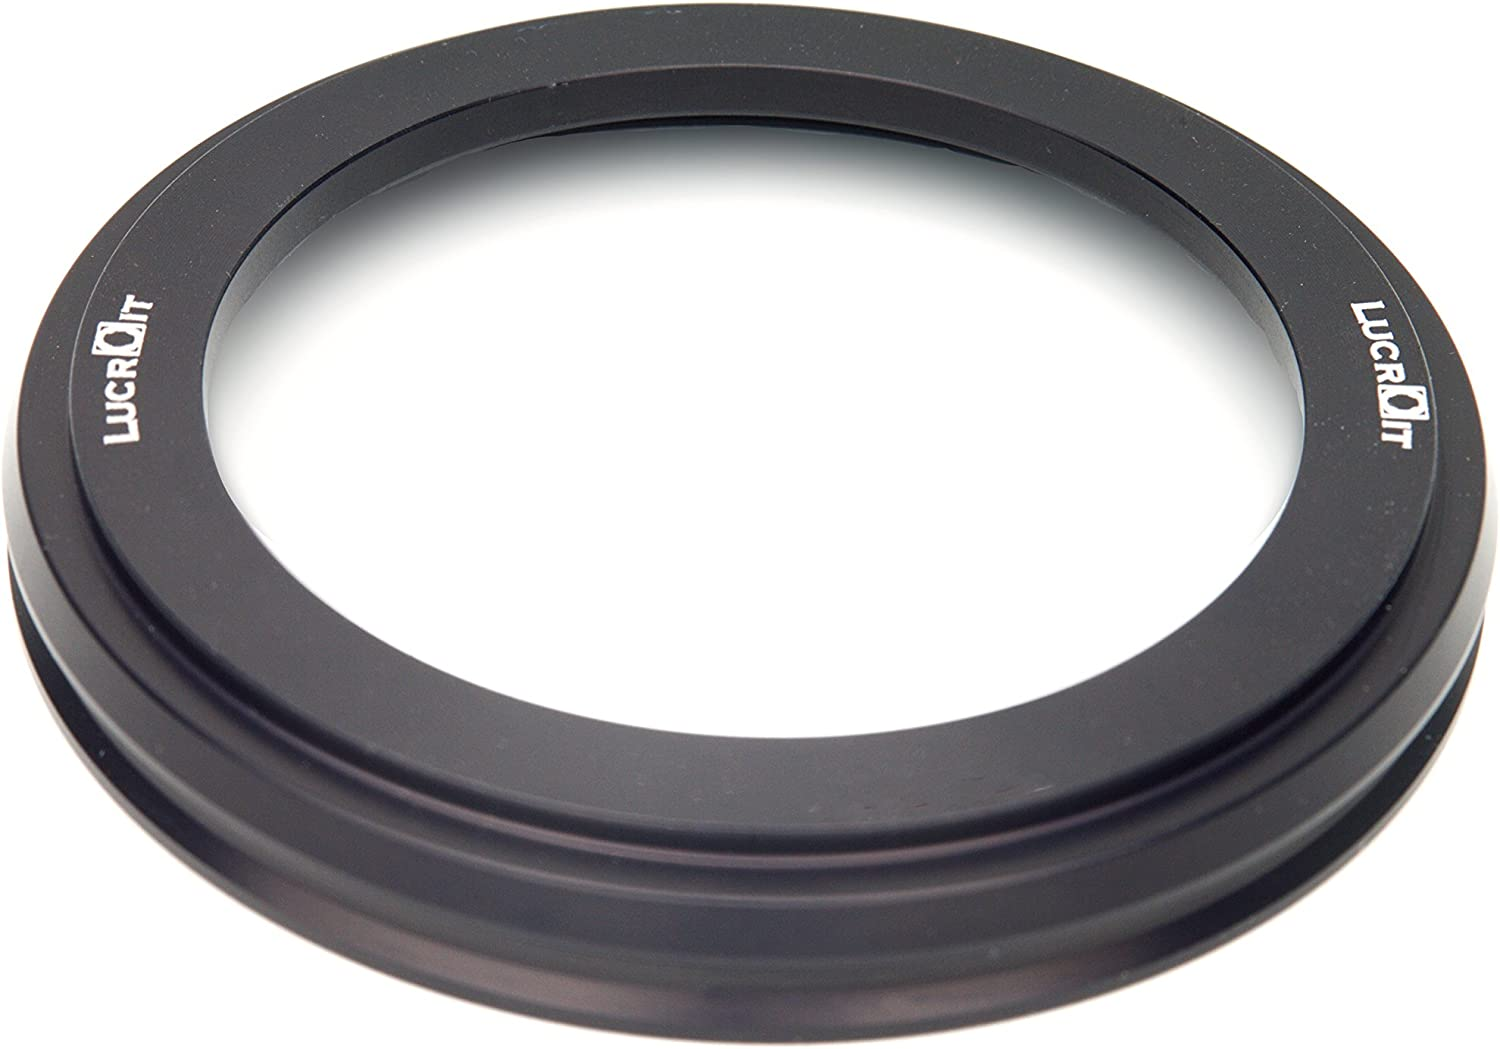 Samyang 8 mm f//3.5 IF MC Aspherical Fish-eye Adaptor for LucrOit 165mm Pro Holder